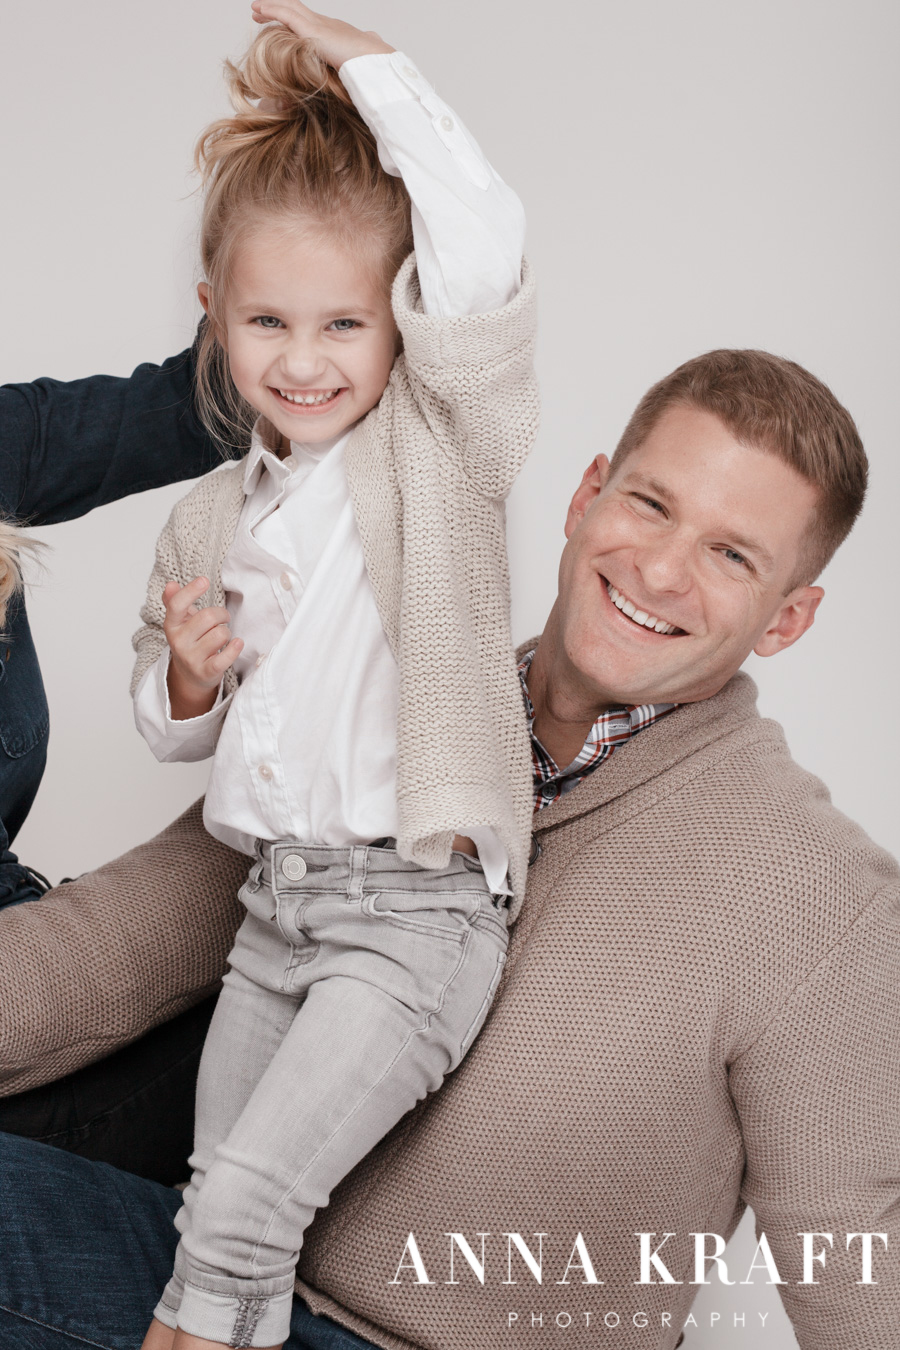 anna_kraft_photography_georgetown_square_studio_family_portrait_Christmas_walters_pictures-29.jpg